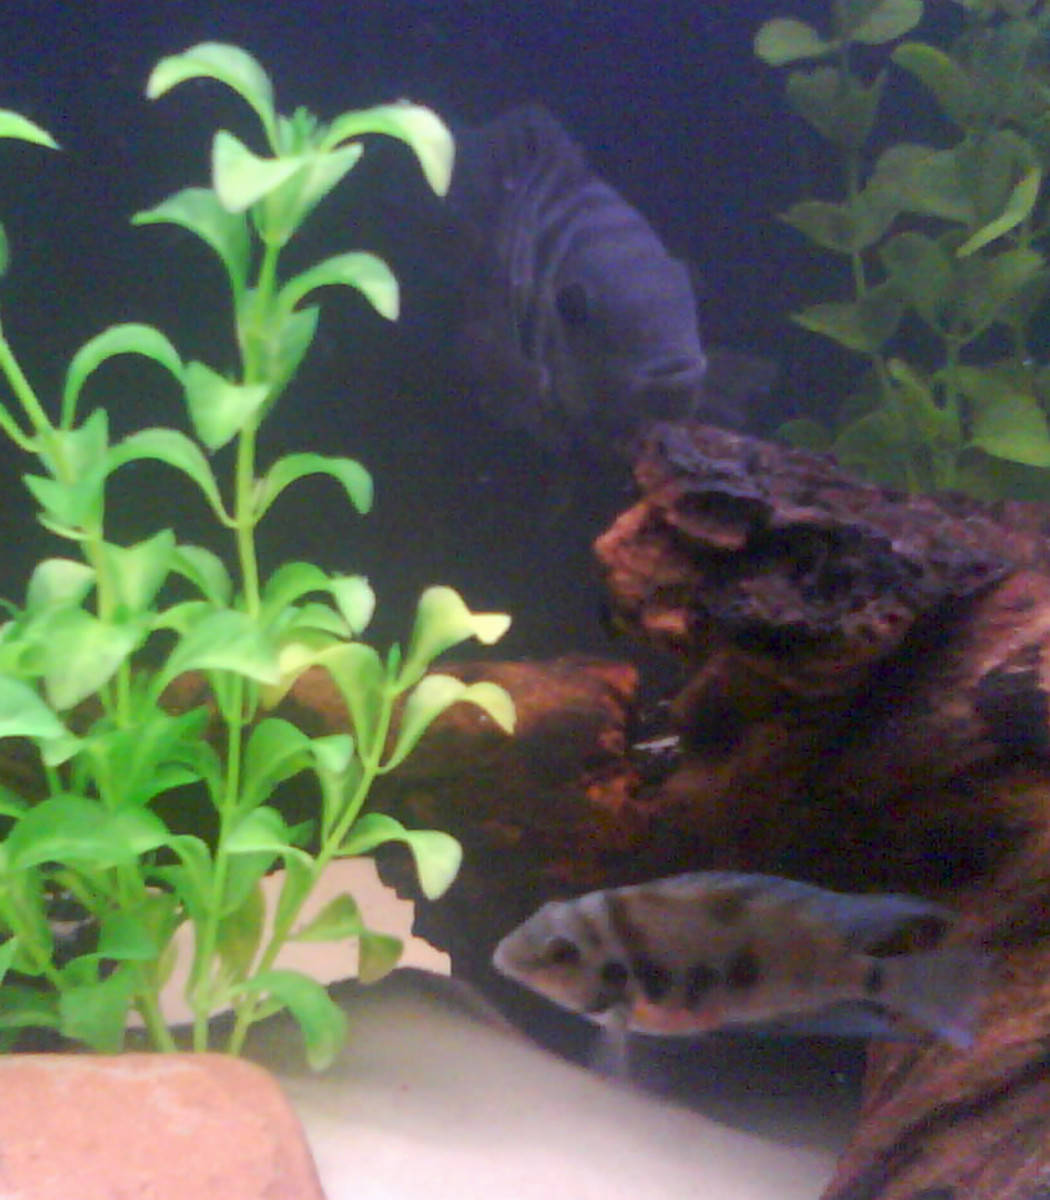 Convict cichlid pair. Although commonly viewed as highly carnivorous, convicts readily eat additions of veggies in their diet.